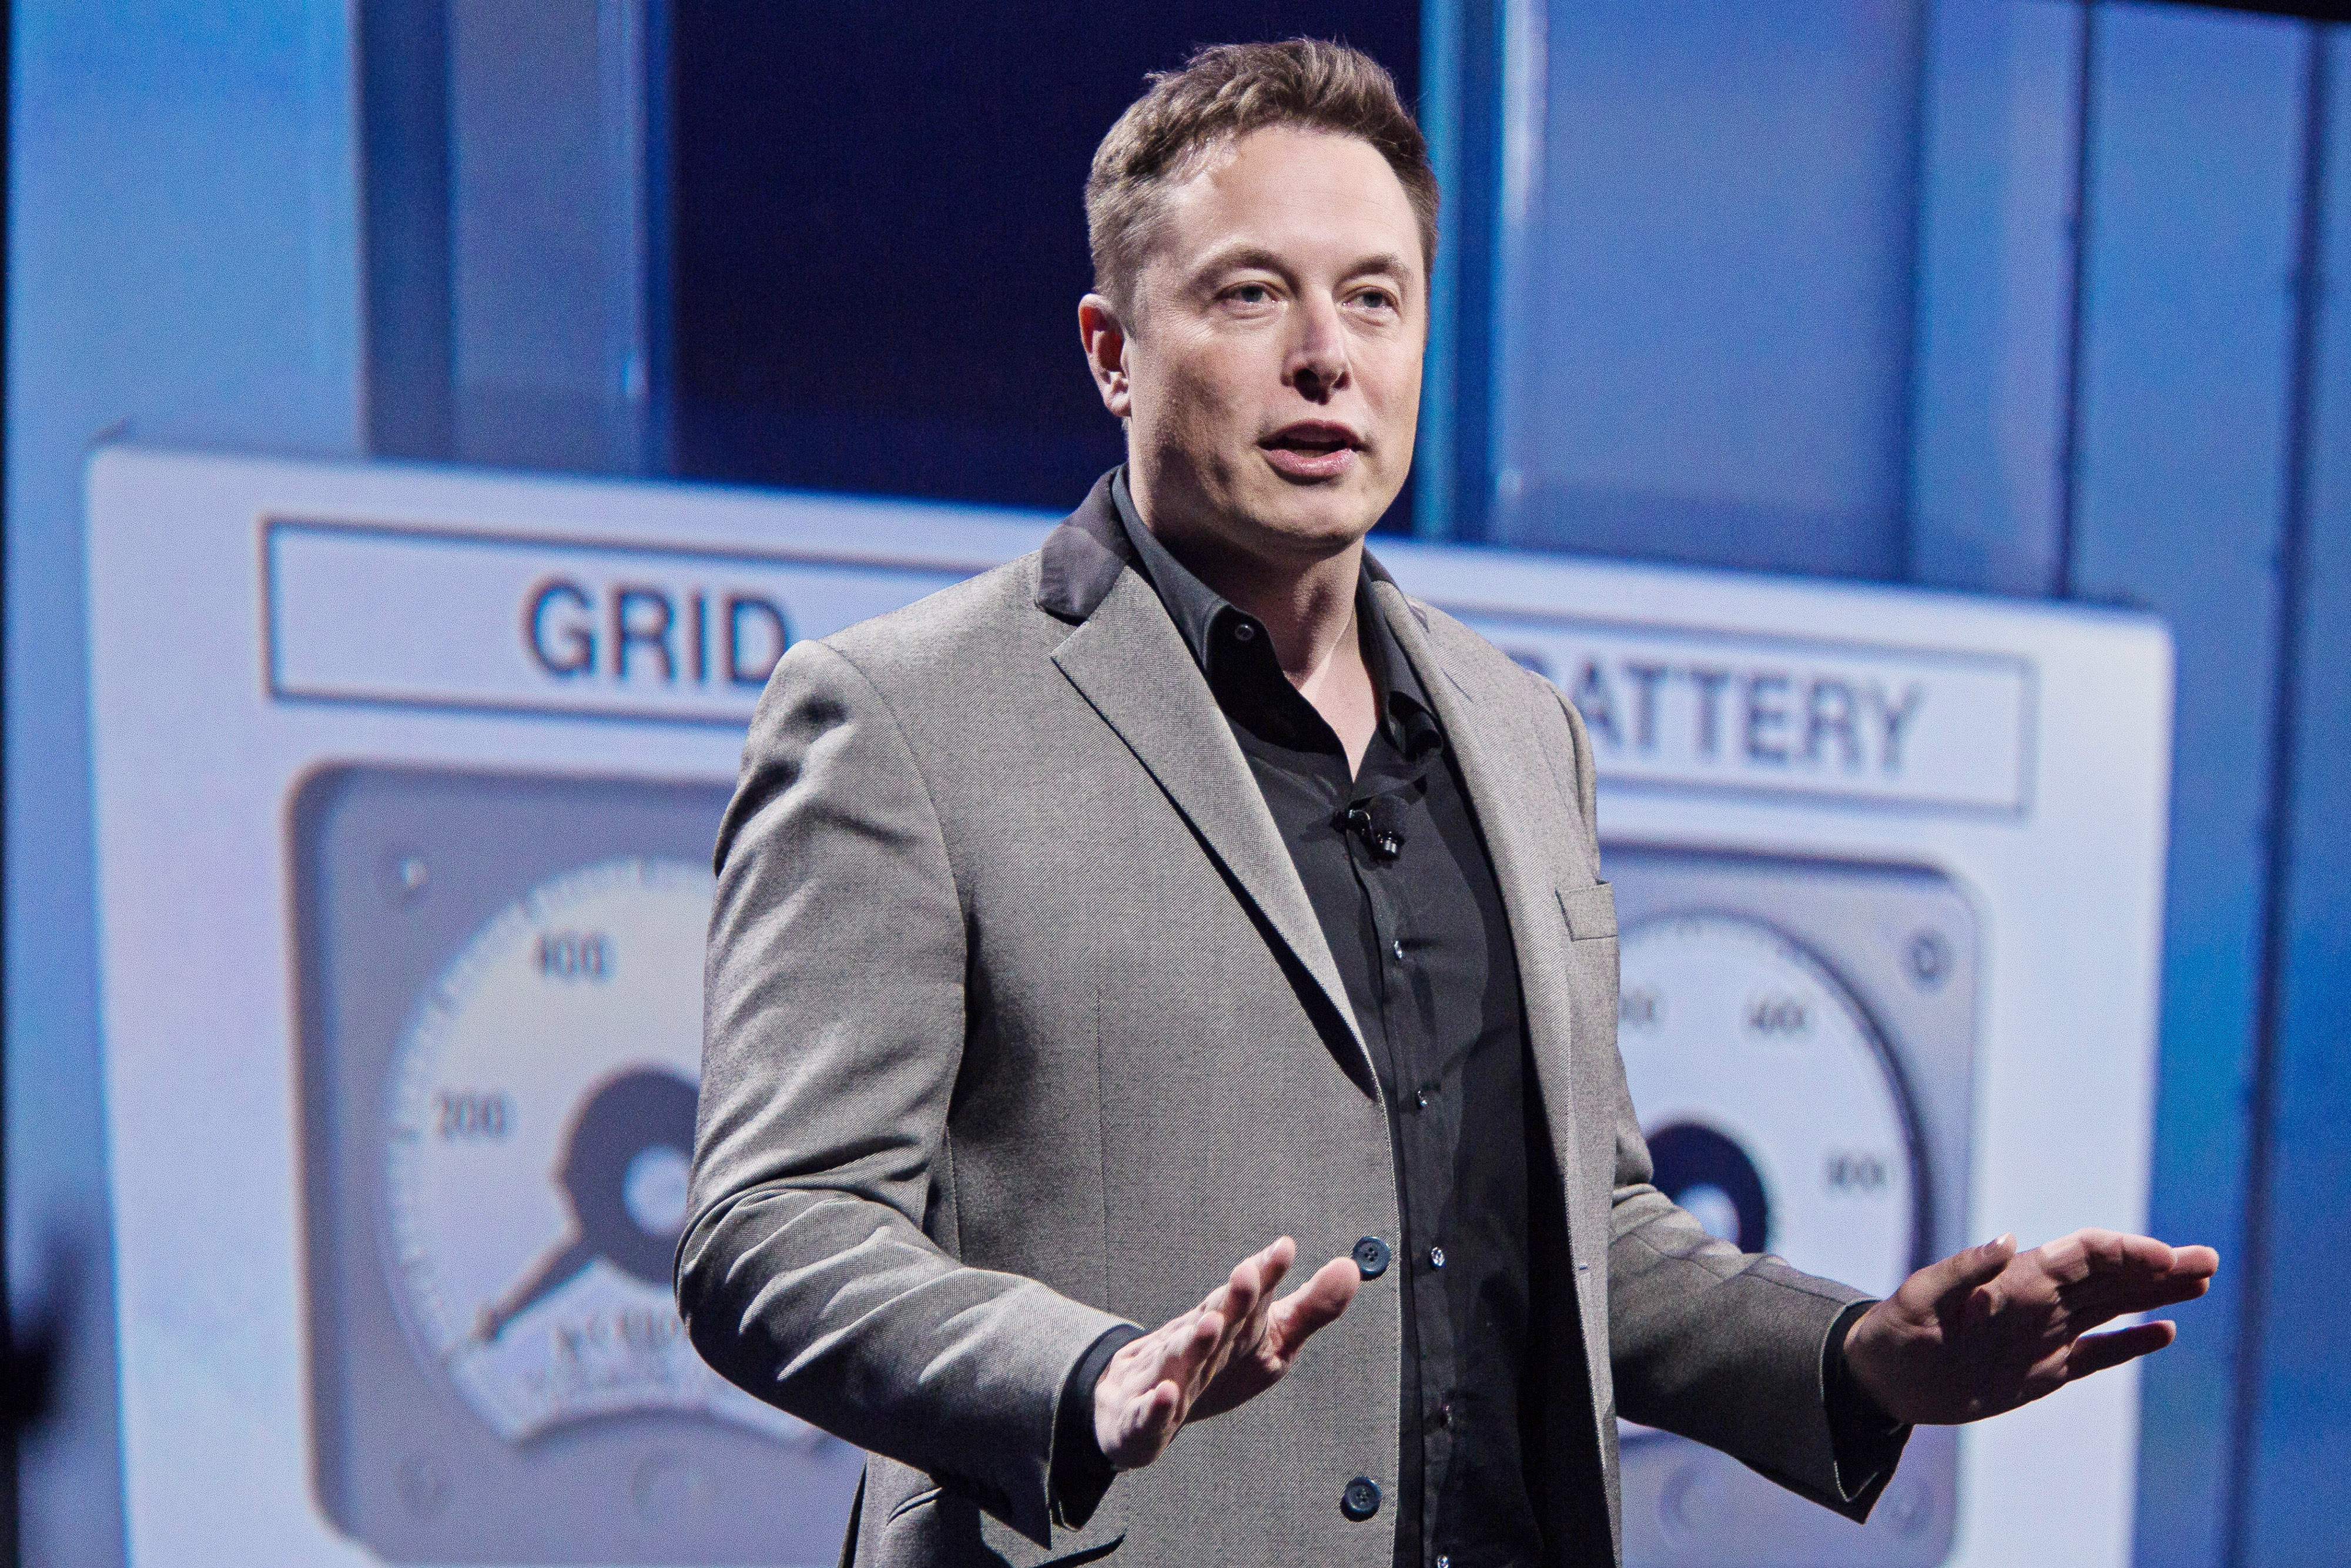 Elon Musk, co-founder and chief executive officer of Tesla Motors Inc., speaks during the unveiling of the company's  Powerwall' at an event in Hawthorne, California, U.S., on Thursday, April 30, 2015. Musk unveiled a suite of batteries to store electricity for homes, businesses and utilities, saying a greener power grid furthers the company's mission to provide pollution-free energy. Photographer: Tim Rue/Bloomberg via Getty Images